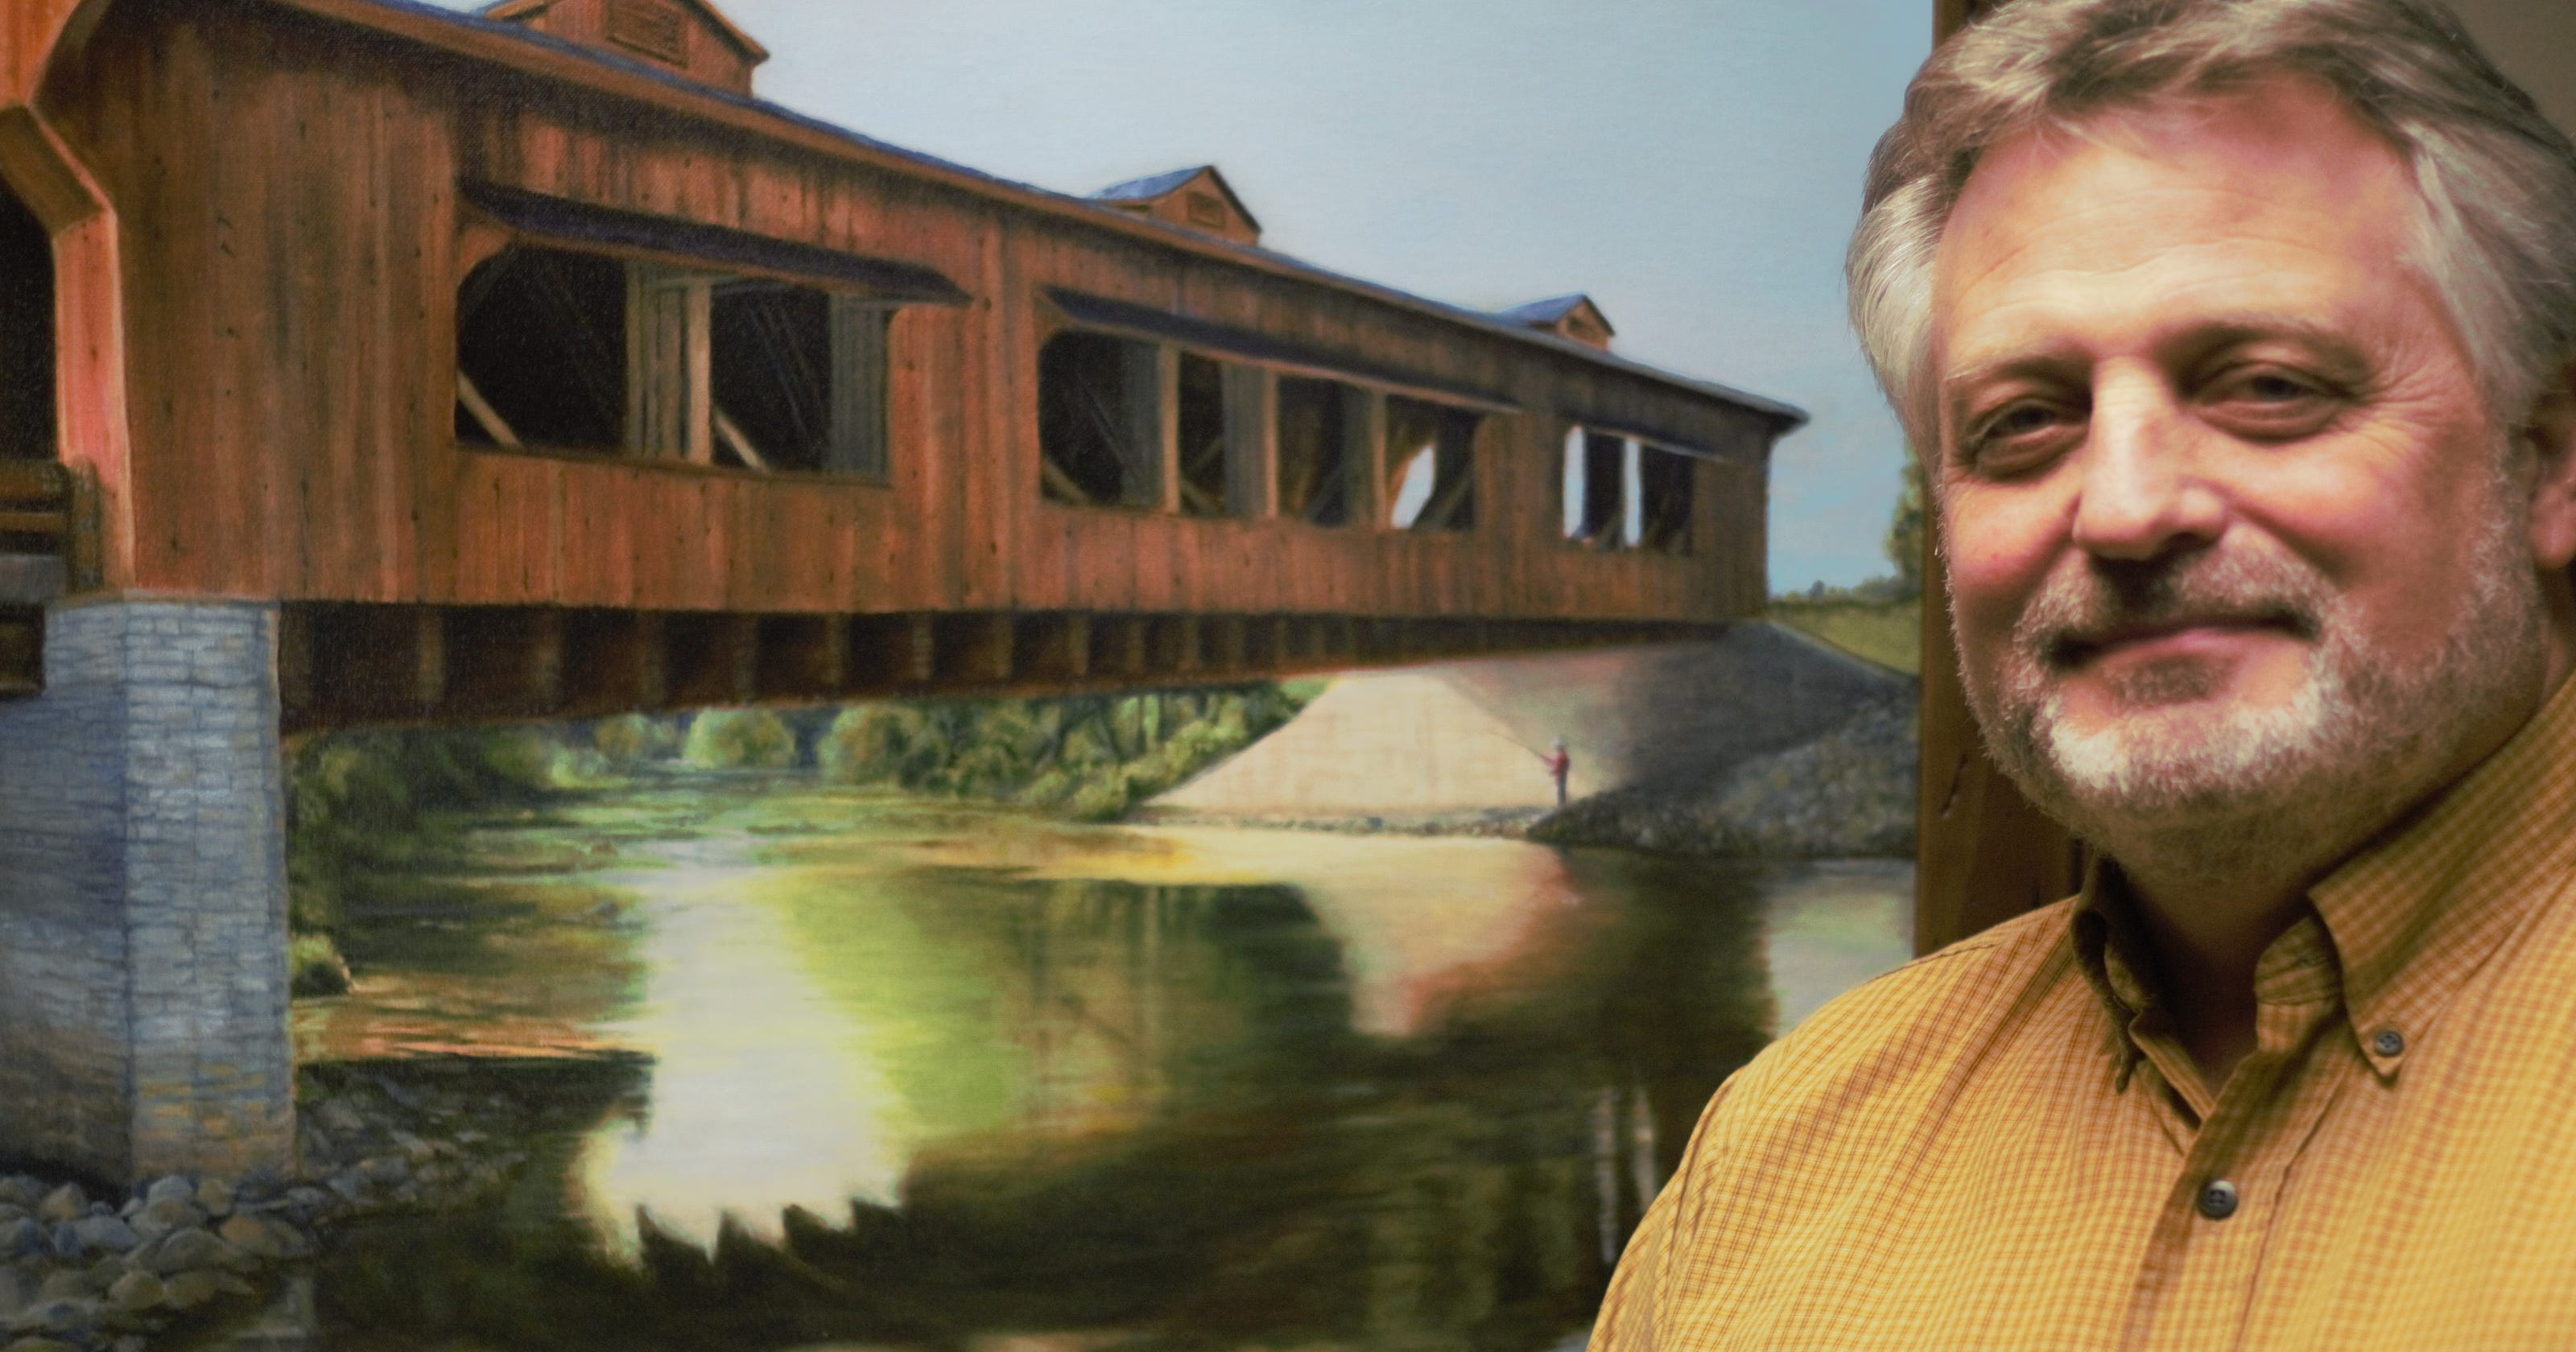 Marion Native Captures Kings Mill Bridge In Painting